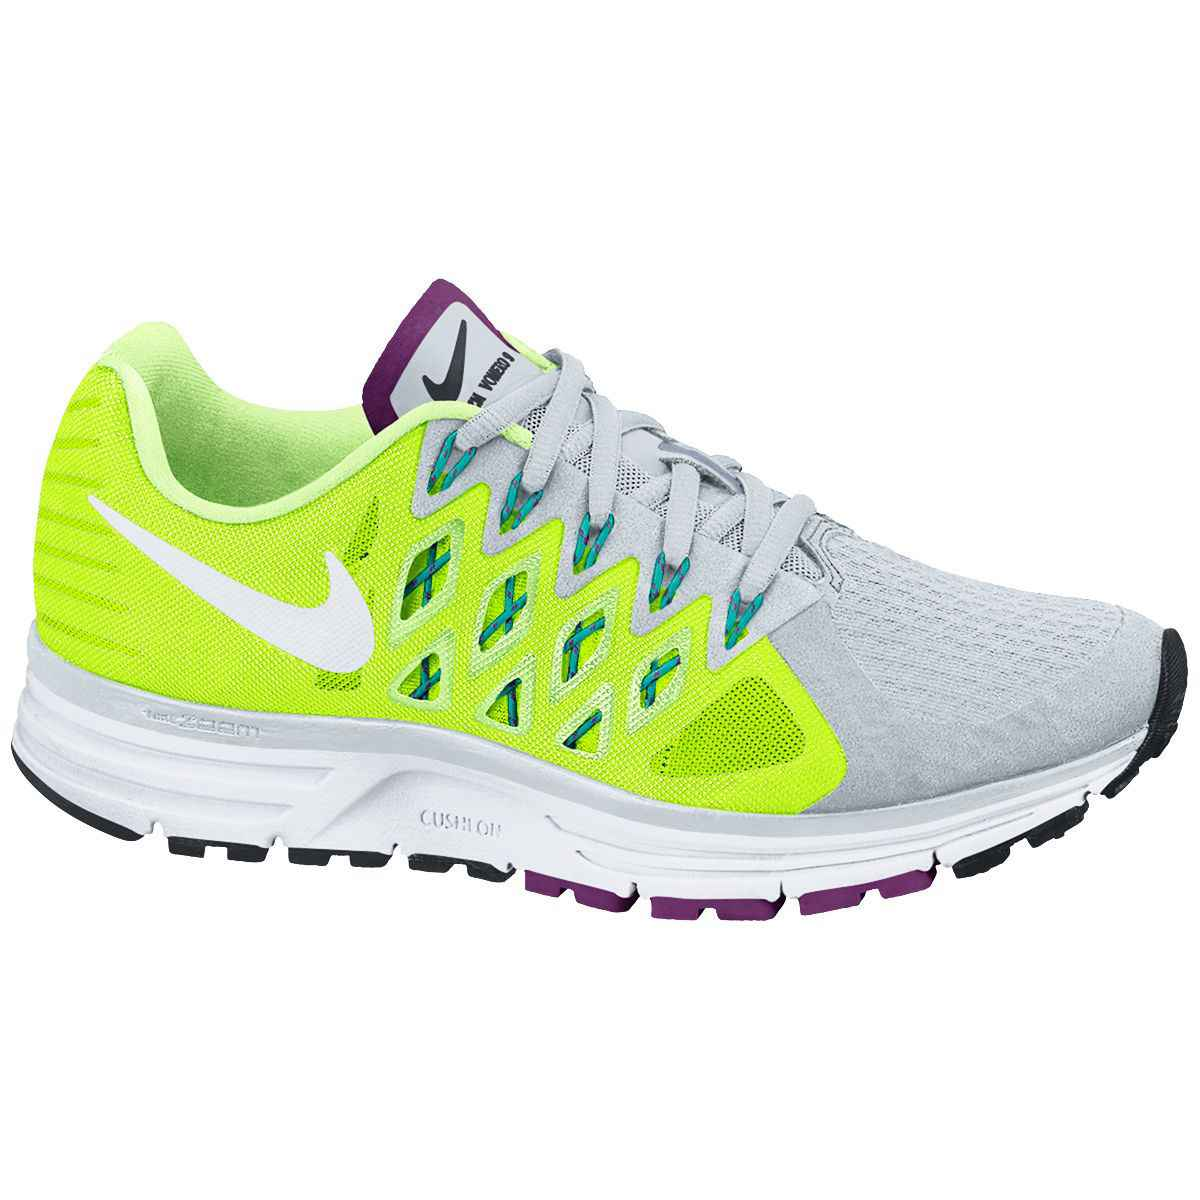 Zoom-Vomero-9-Shoes-SU14-Cushion-Running-Shoes-Grey-White-Yellow-Q2-14